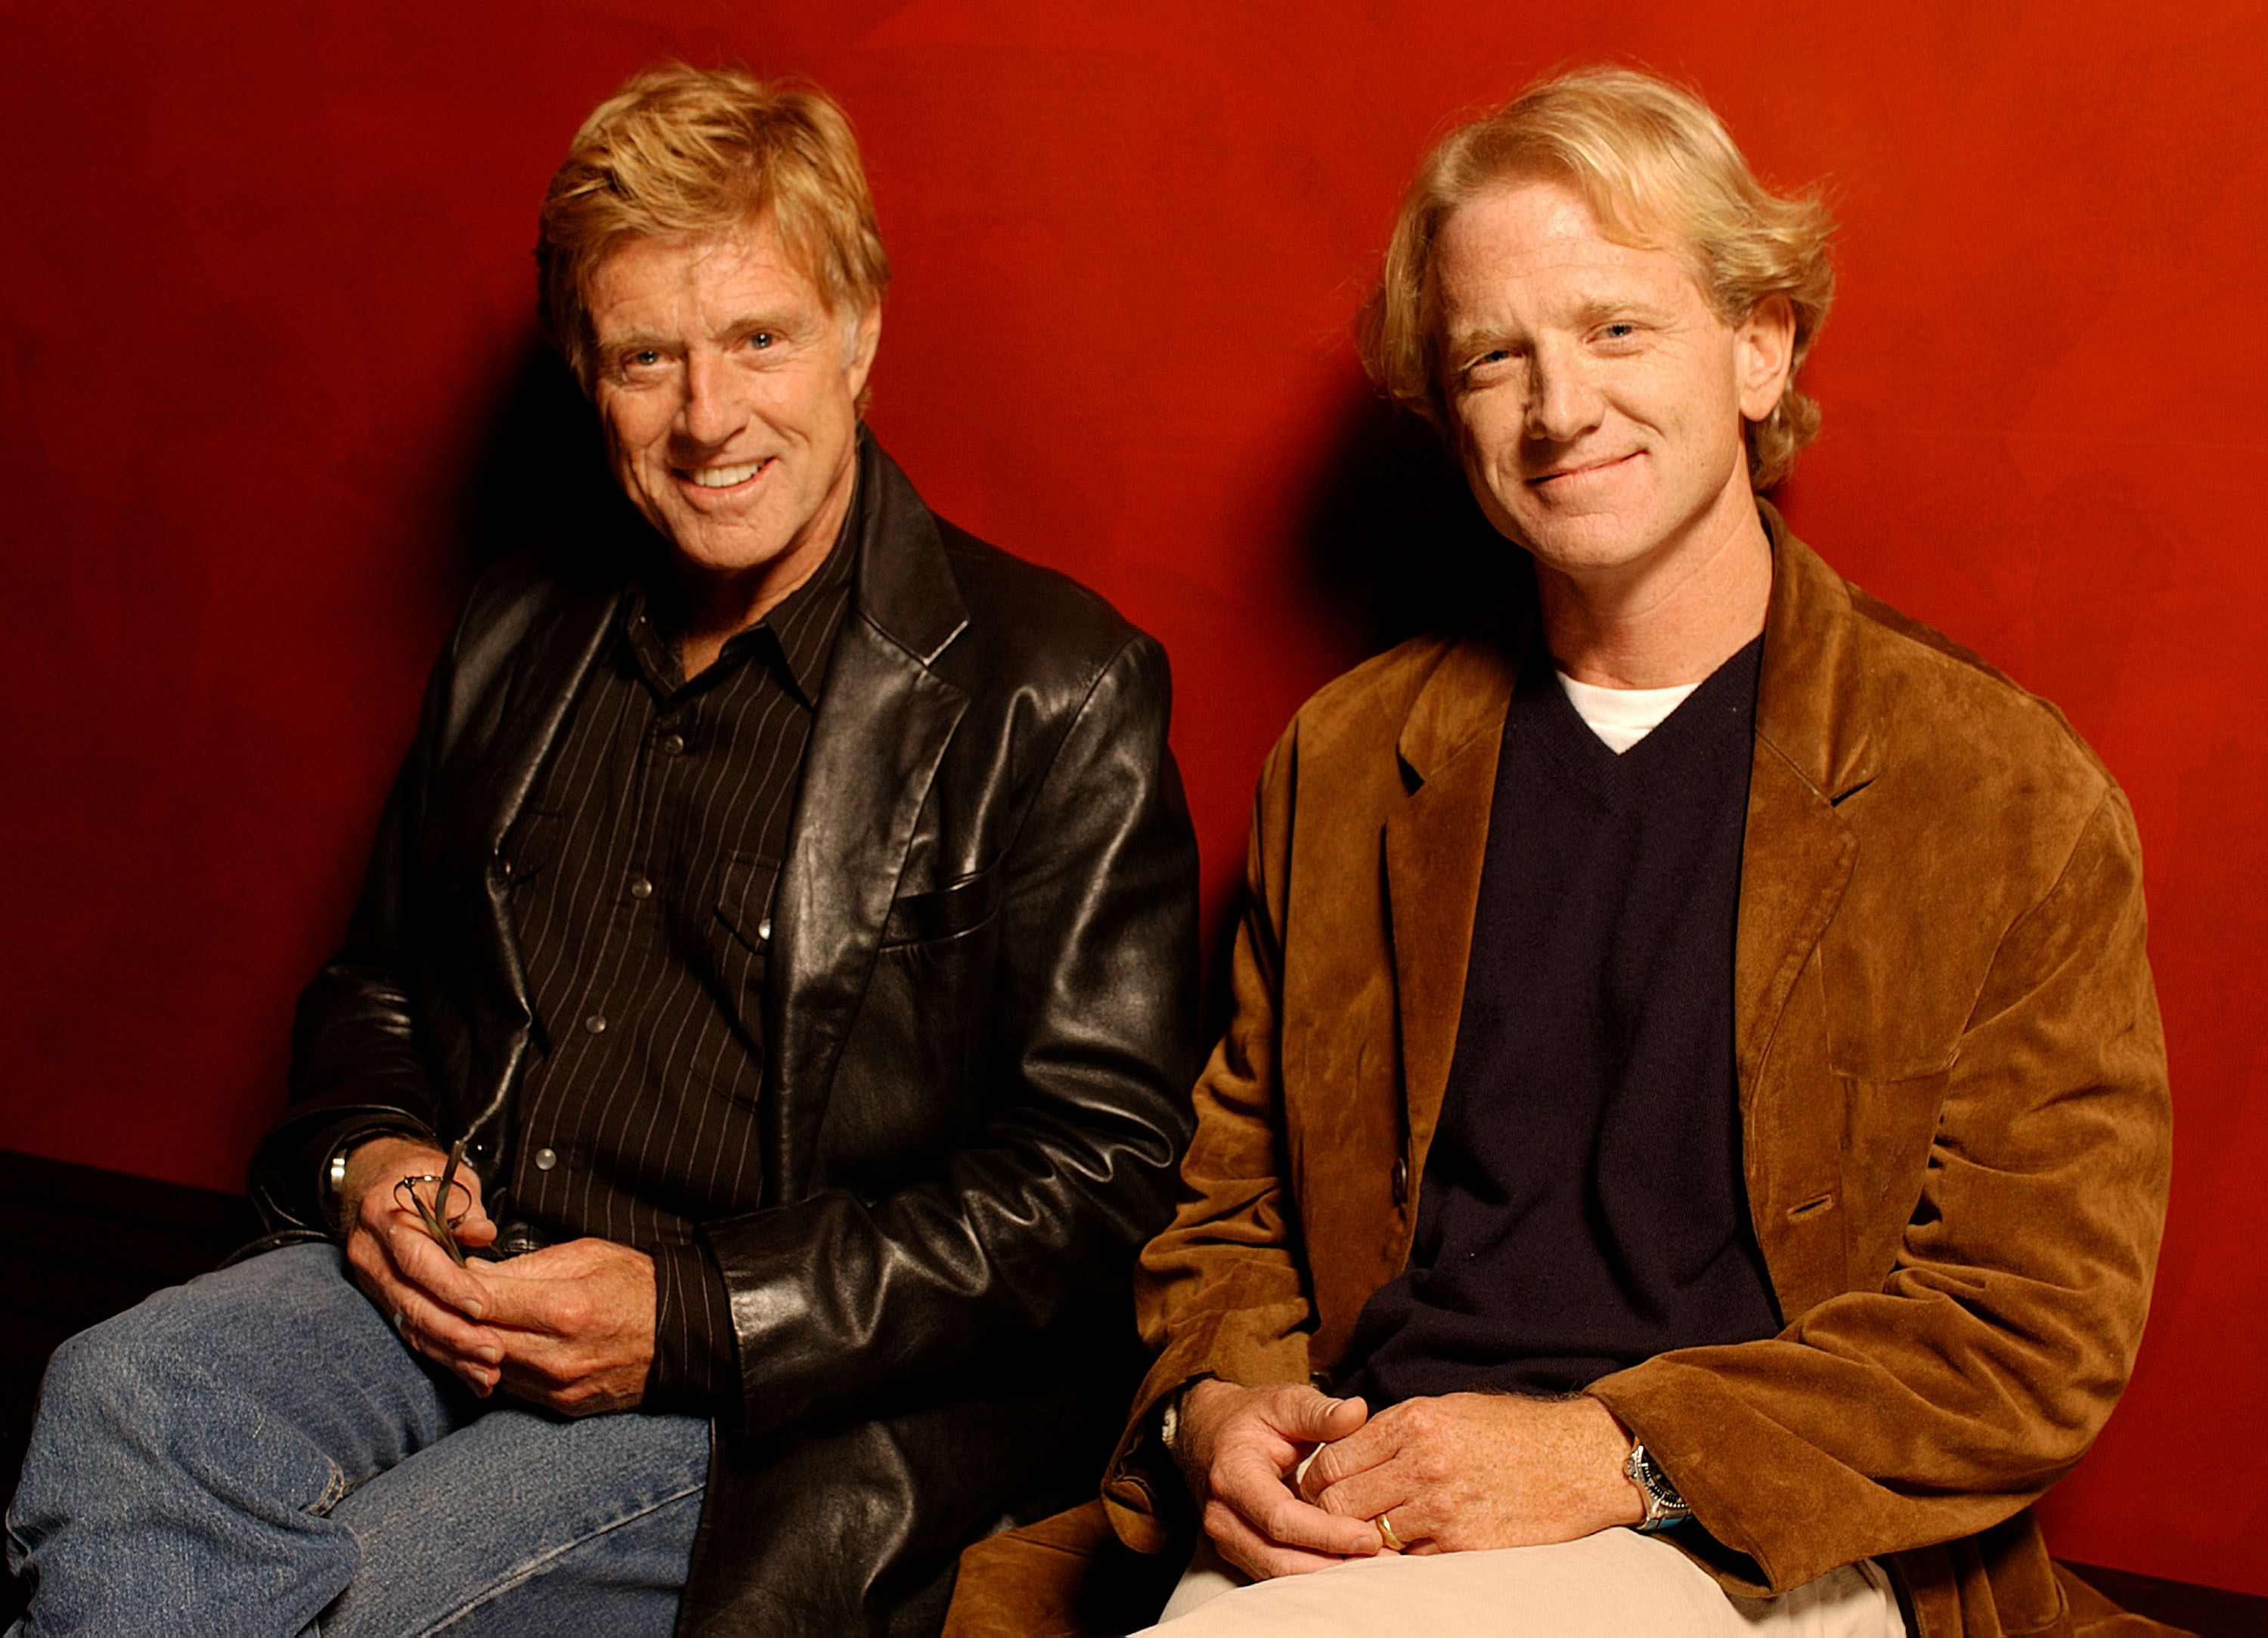 """Robert Redford and son James Redford at AFI Film Festival screening of James Redford's Directorial Debut """"SPIN"""" - Portraits at ArcLight Cinemas on November 08, 2003   Photo: Getty Images"""